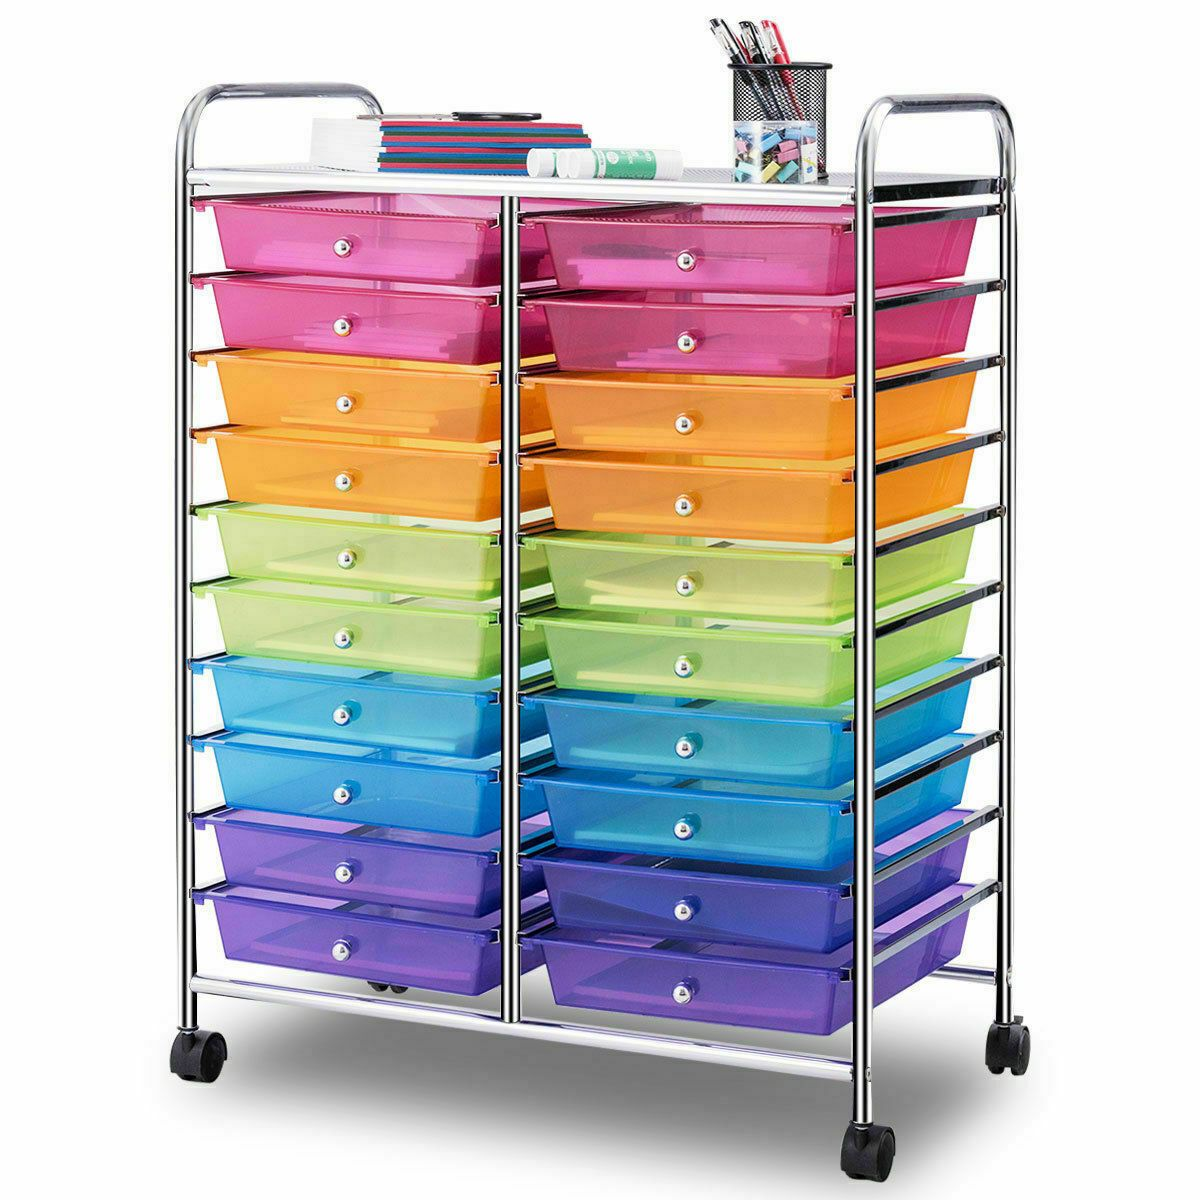 Details about 20 drawers rolling cart storage multi color